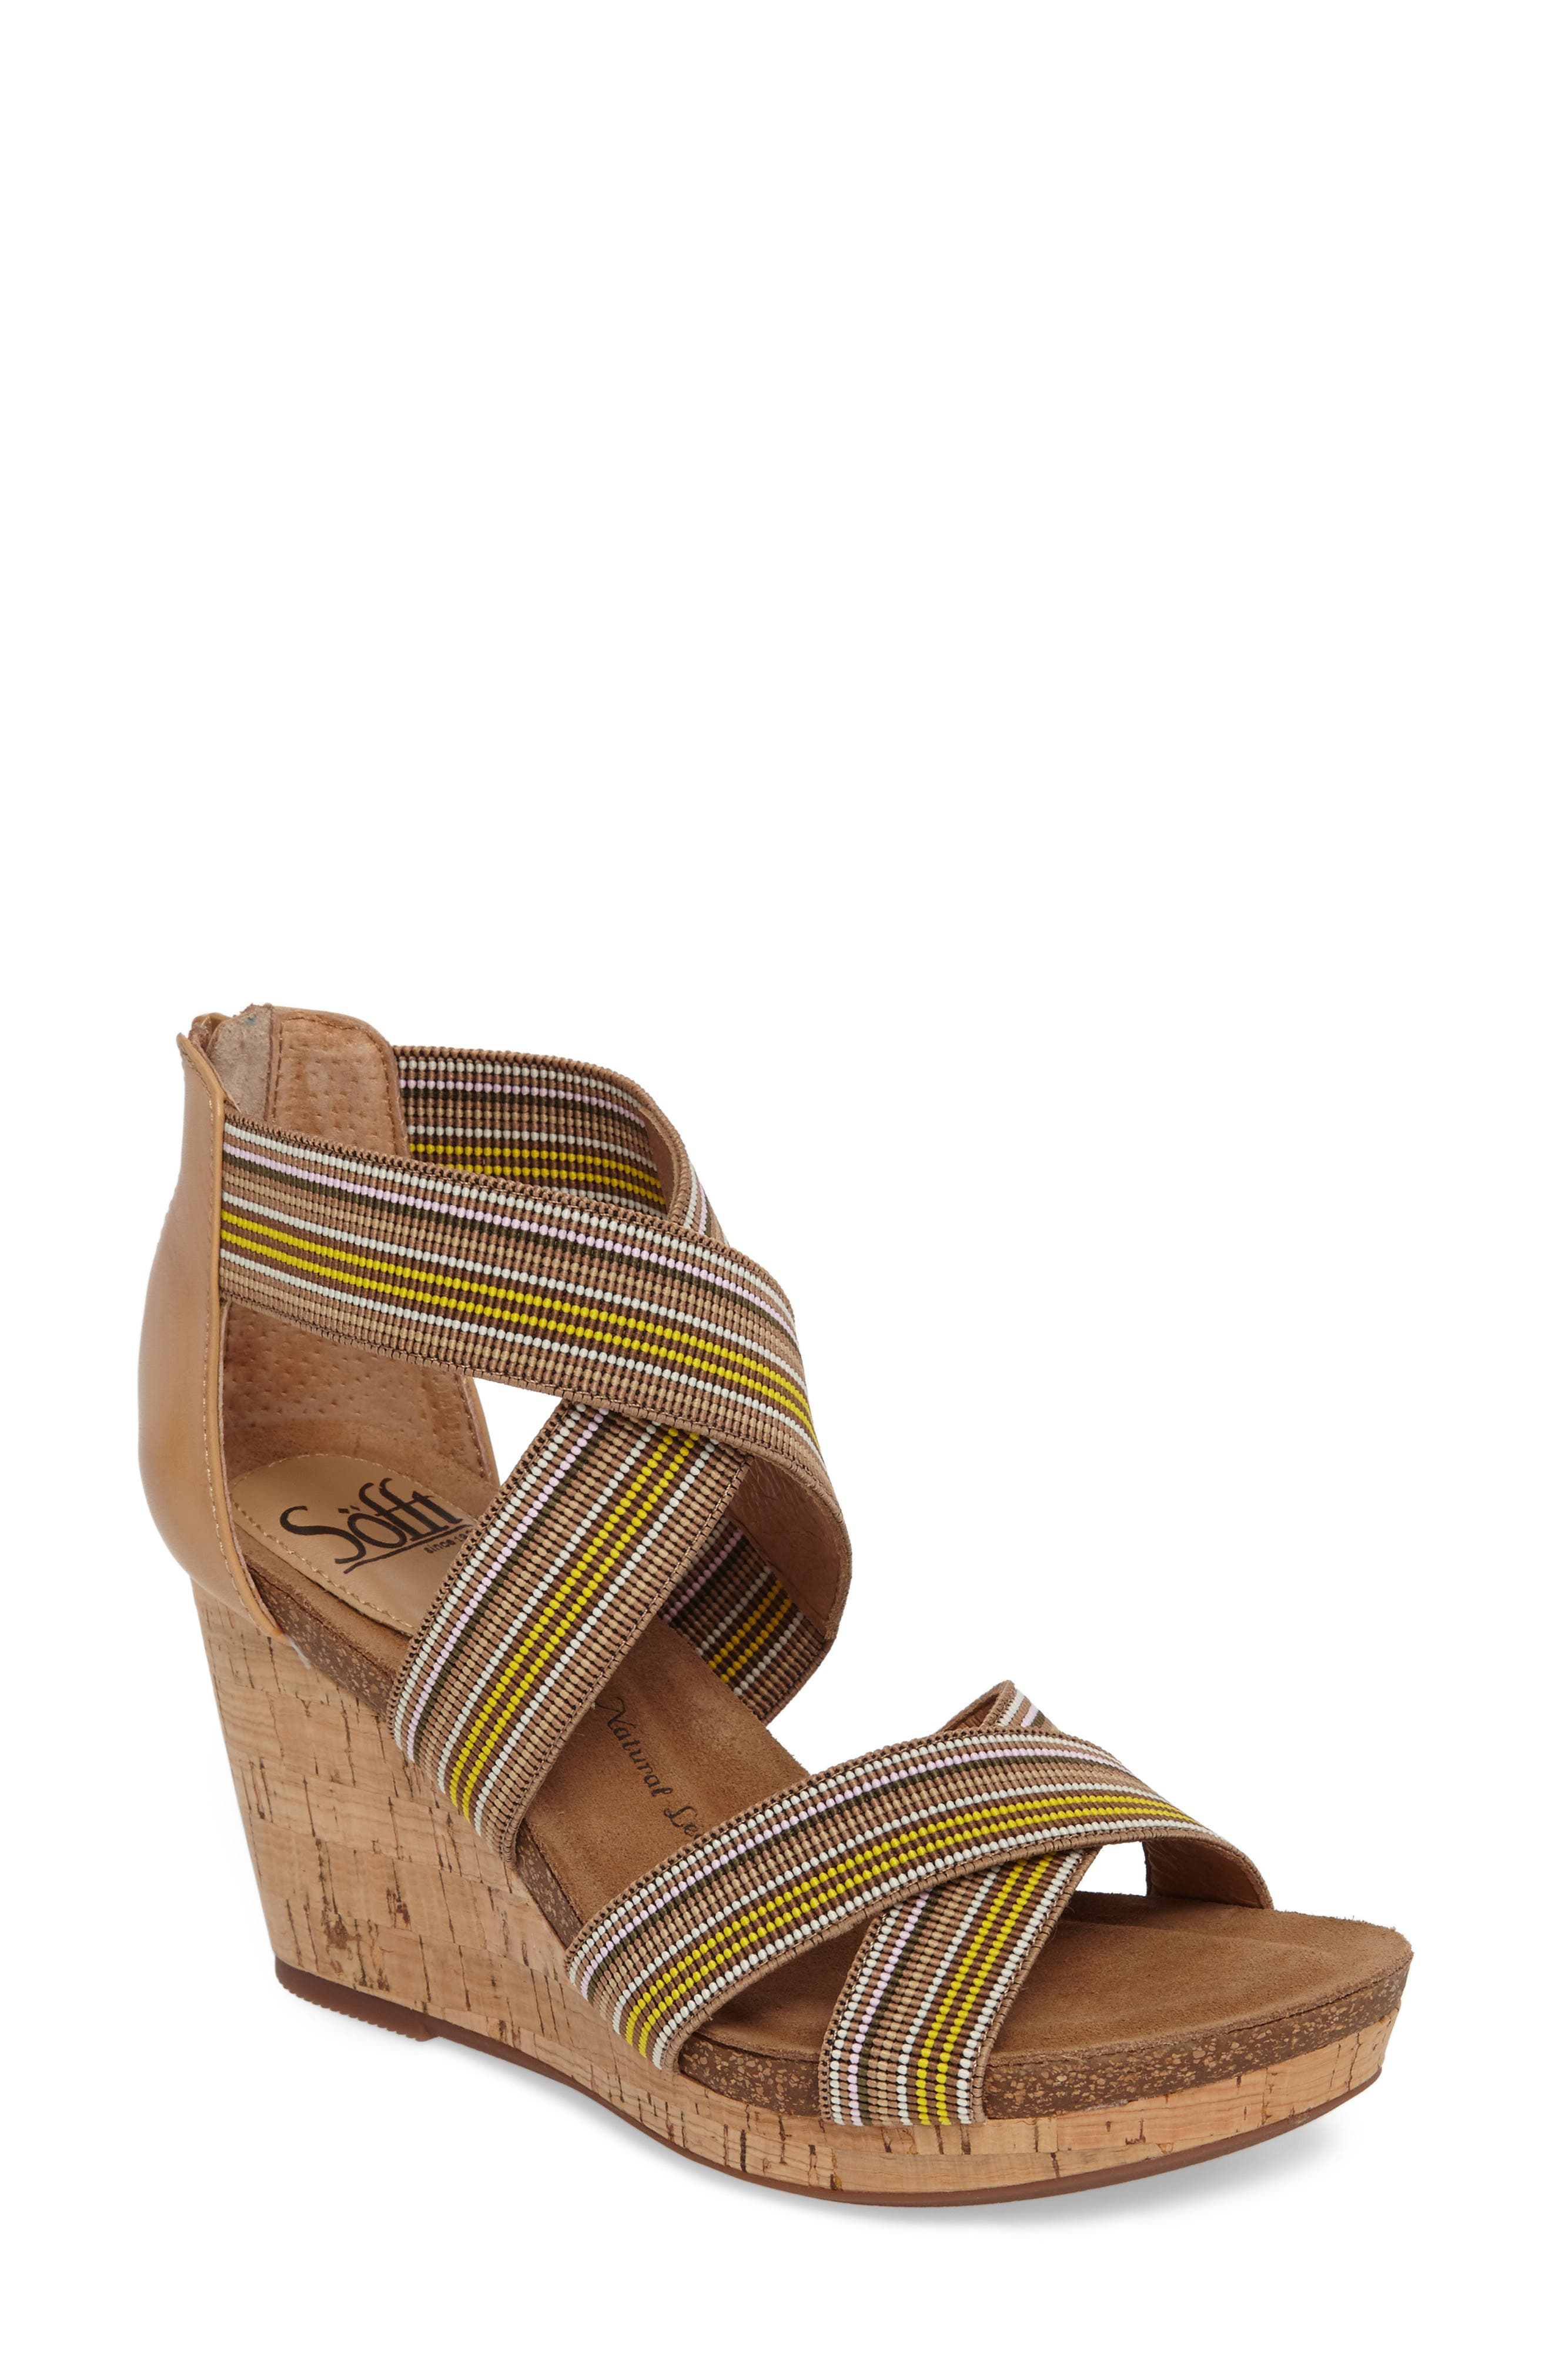 Cary Cross Strap Wedge Sandal,                             Main thumbnail 1, color,